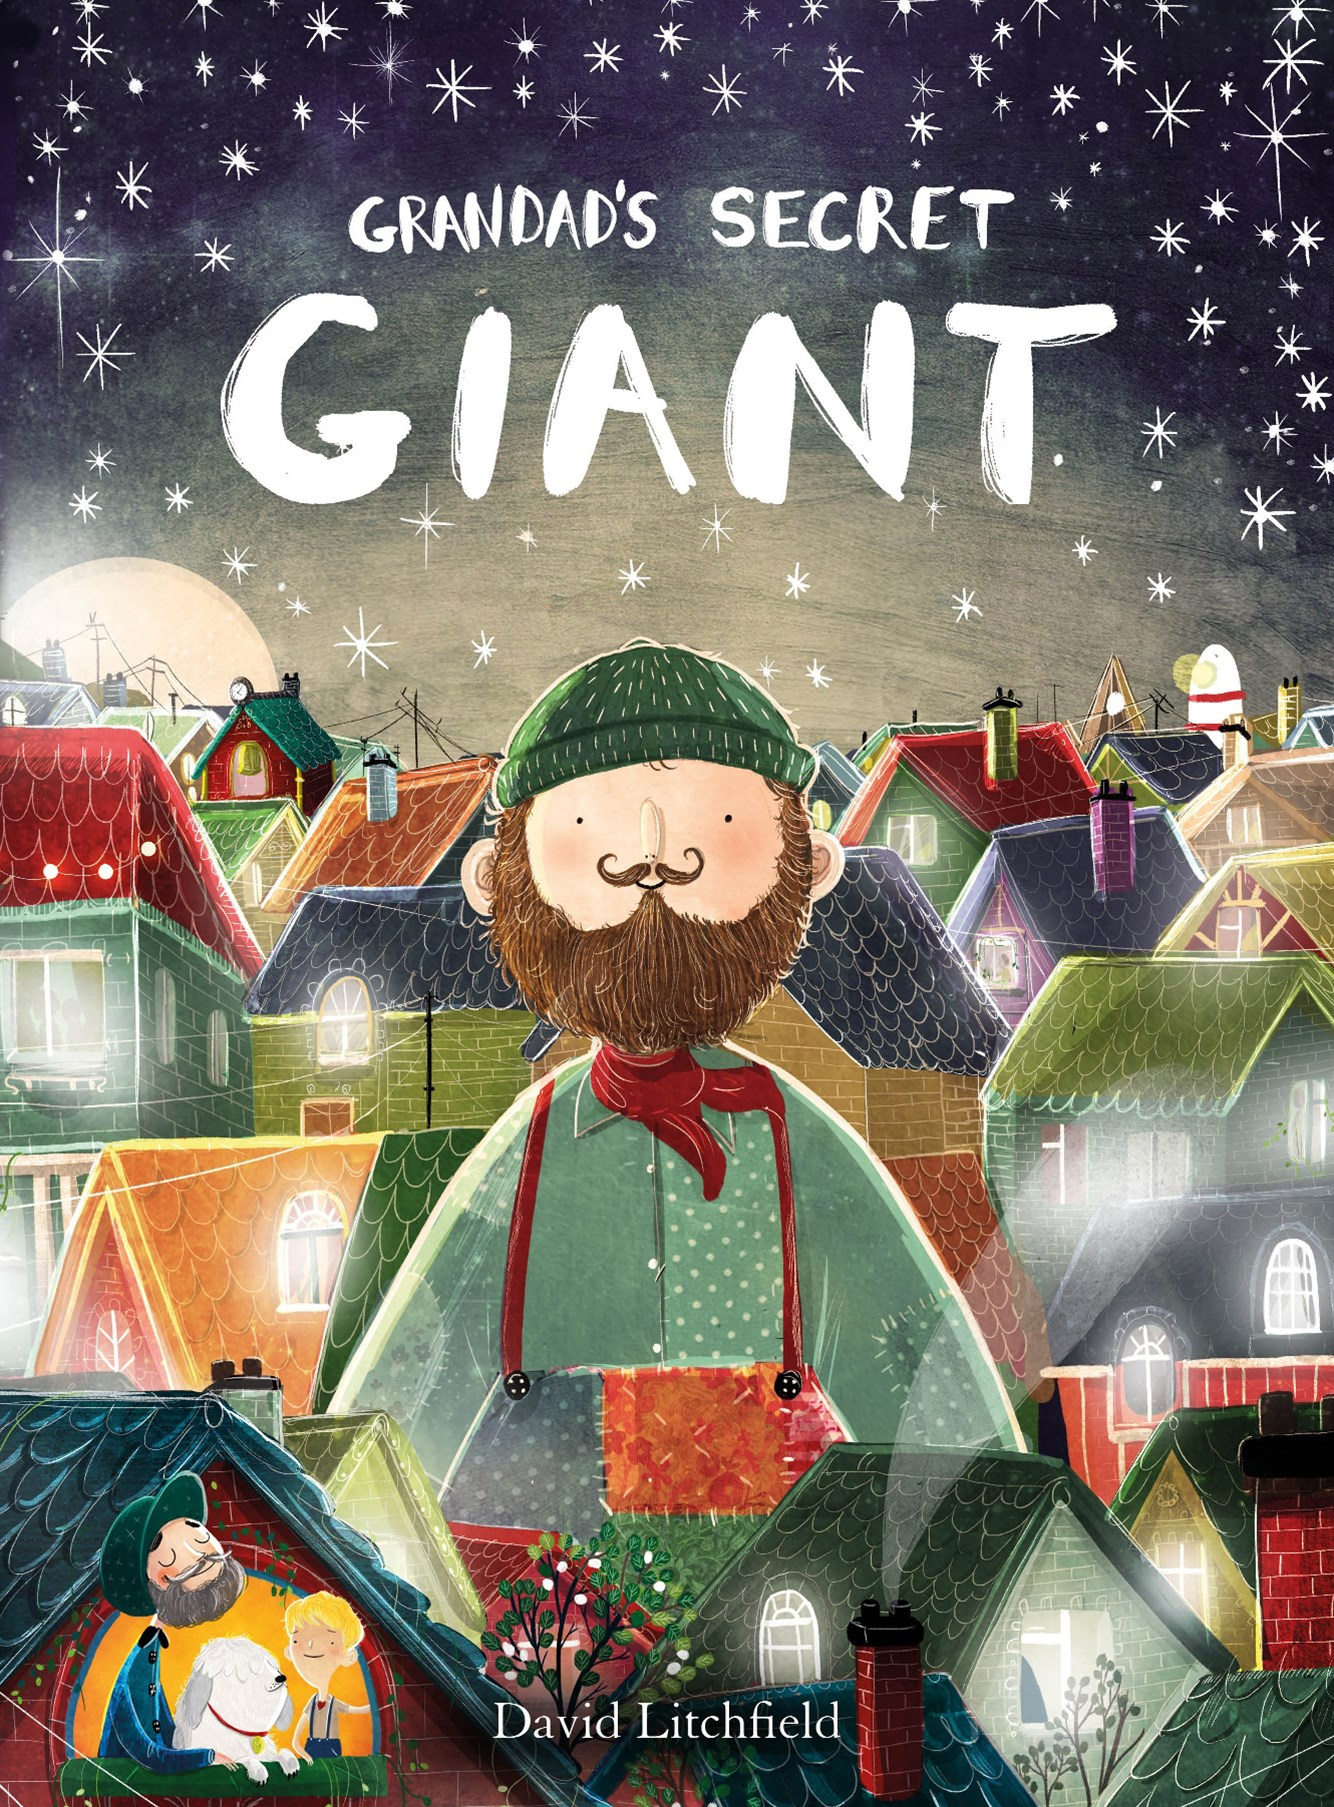 Grandad's Secret Giant